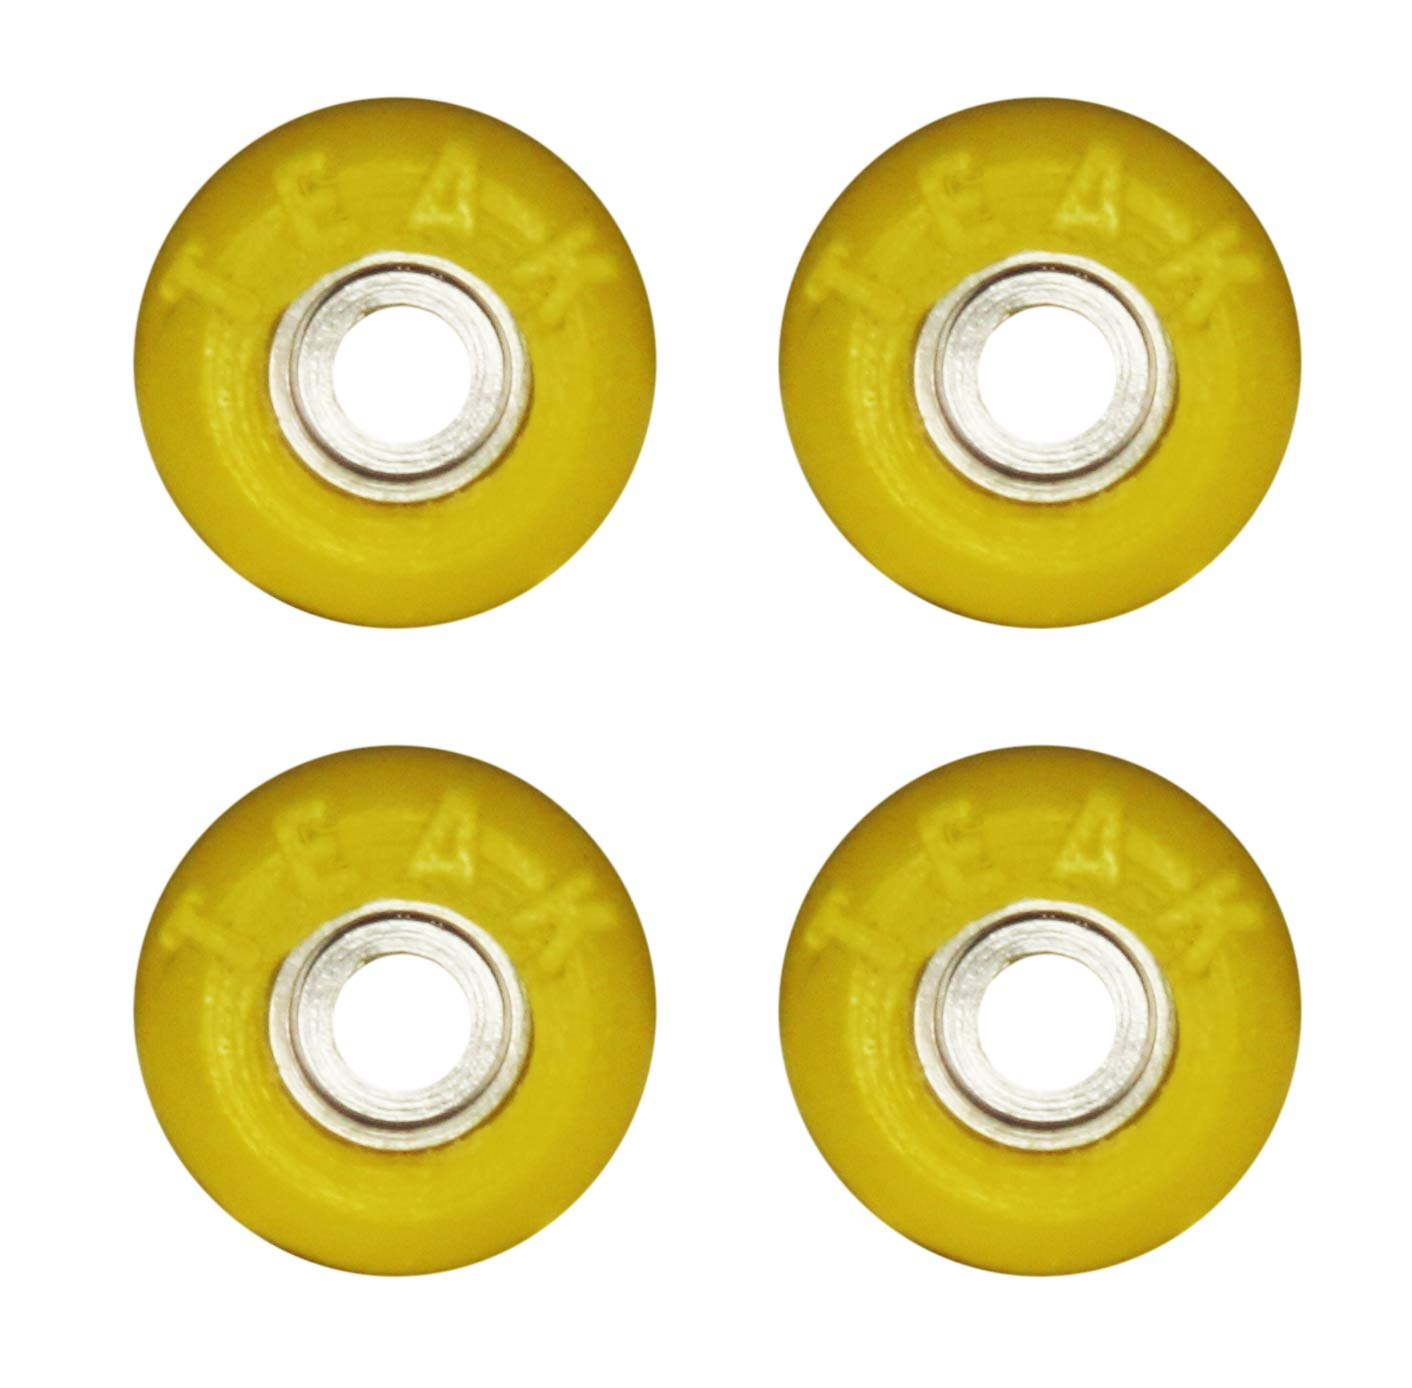 Teak Tuning 70D Urethane Fingerboard Wheels - Lock Nuts/Washers Included - Citrus Yellow Colorway